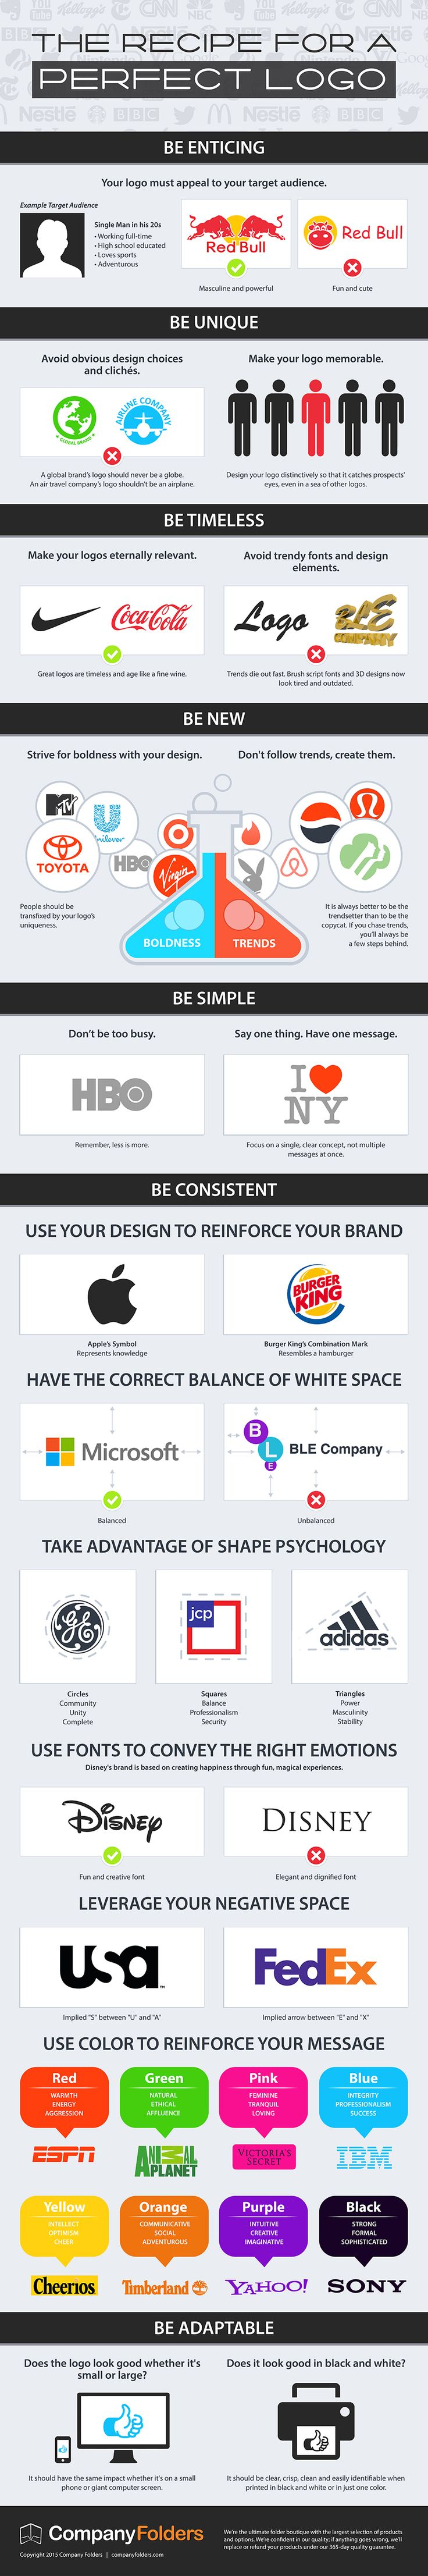 The Recipe for a Perfect Logo Design #infographic